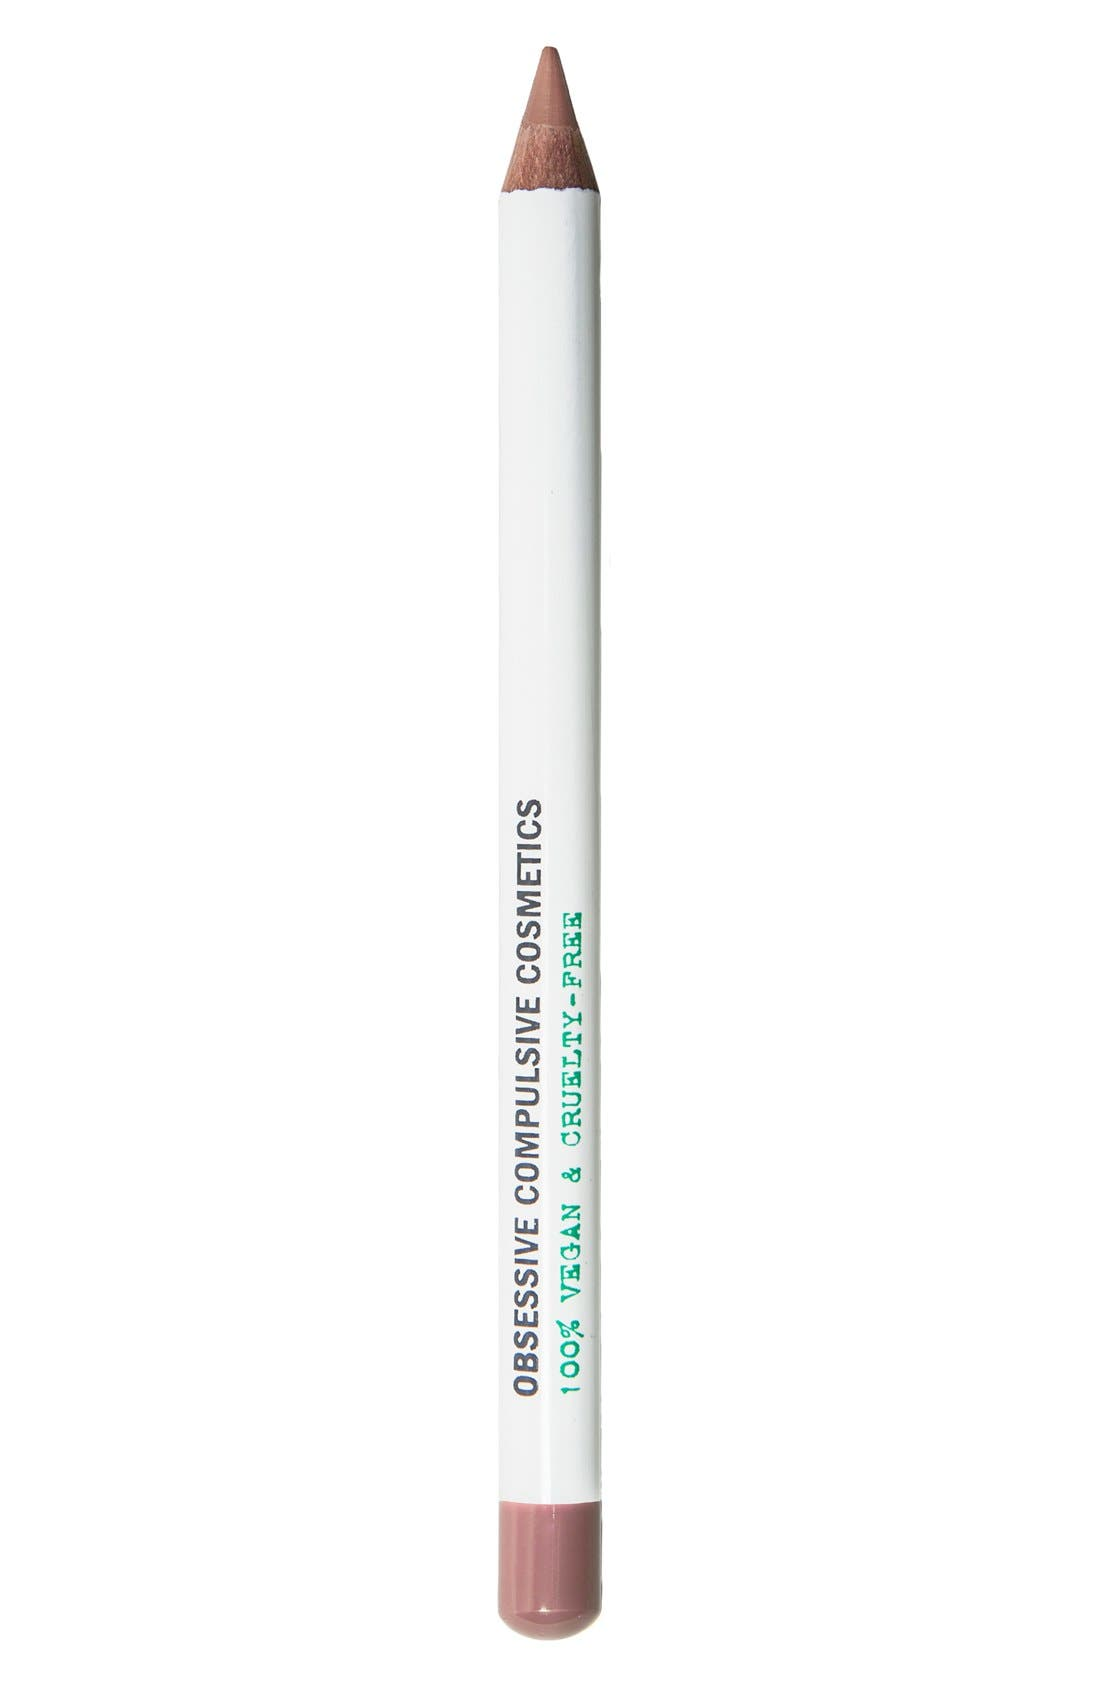 Obsessive Compulsive Cosmetics Colour Pencil